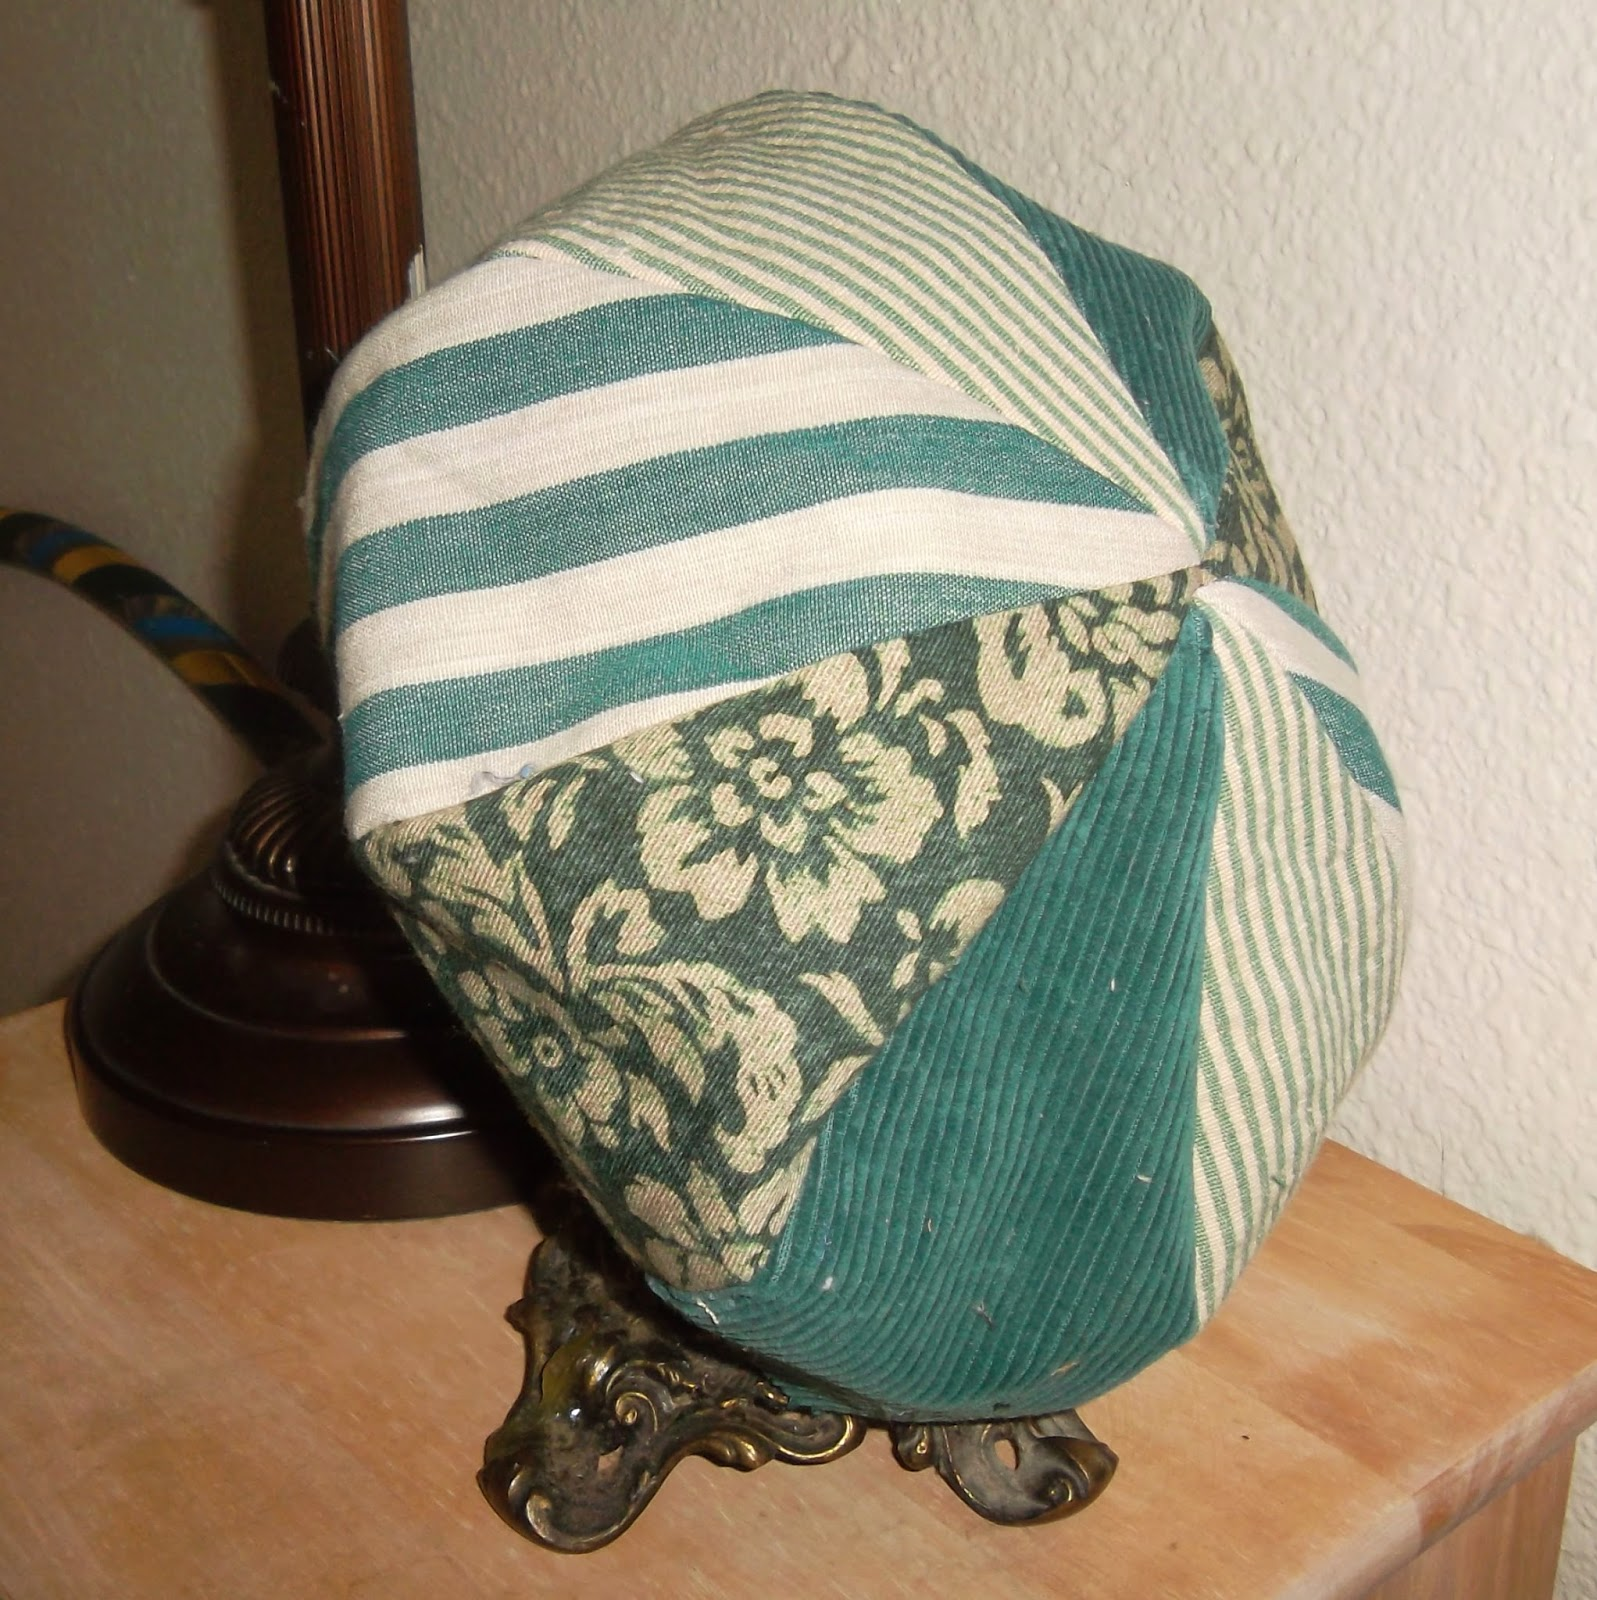 Crown of a green, eight-paneled hat, draped over globe-shaped candleholder. The panels alternate between green-on-white floral, thick striped, thin striped and solid green corduroy fabrics.